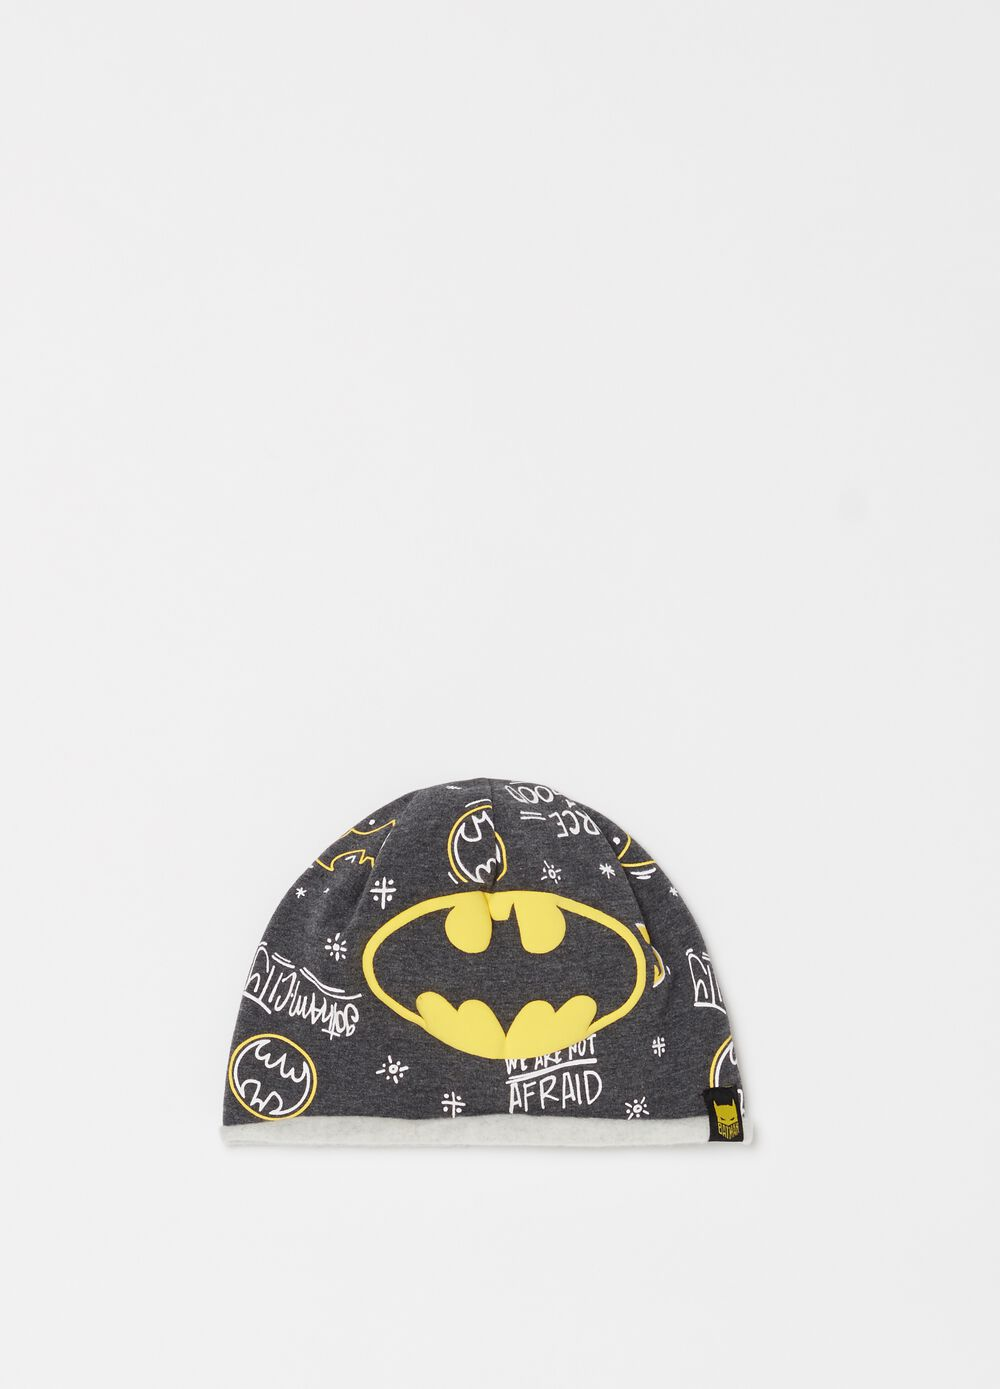 Warner Bros Batman jersey hat [DC COMICS]